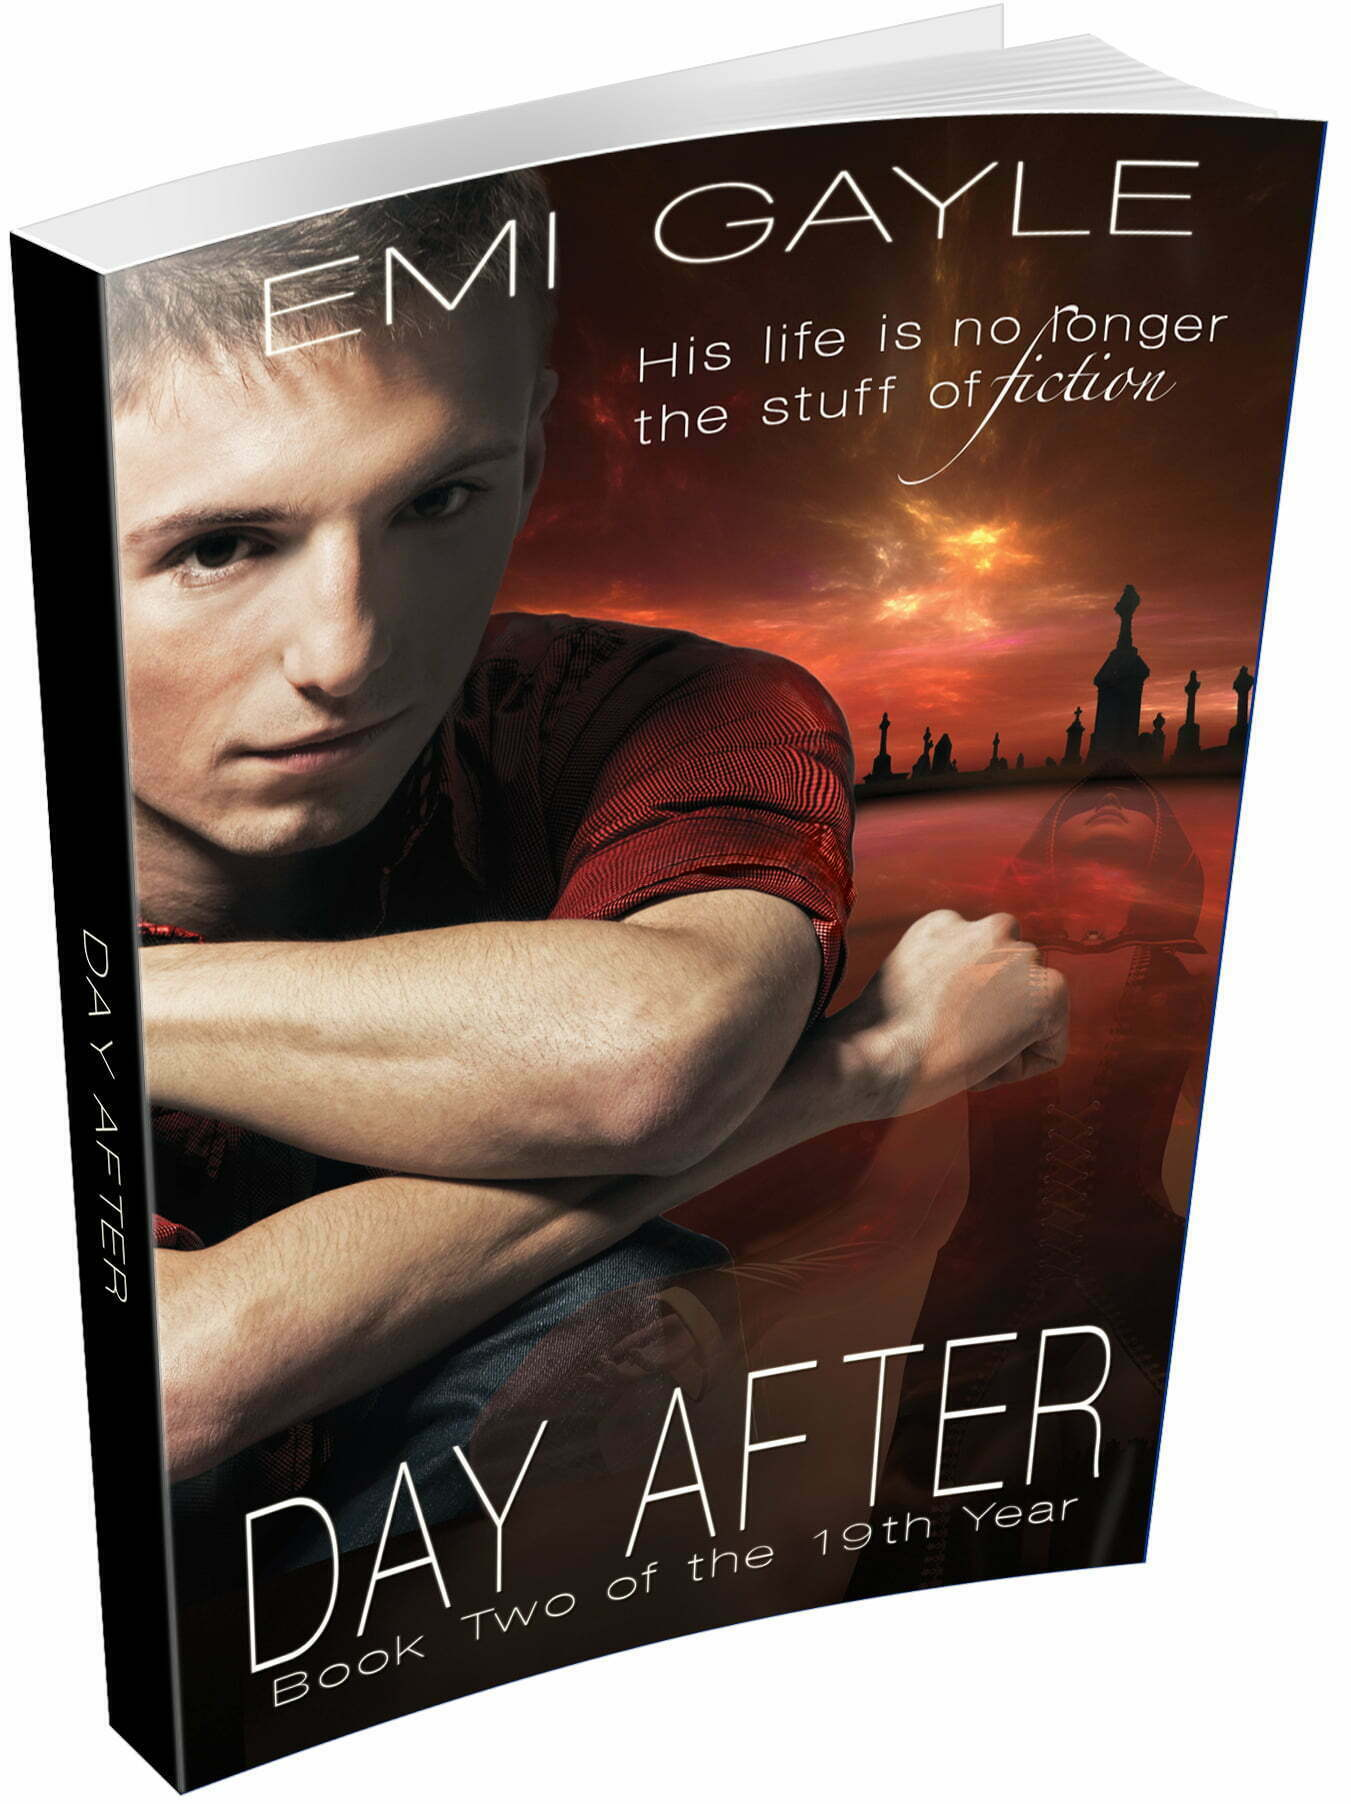 Oooh, Goodies! Book 2 goodies! Day After hotness in Winn! Check it out!